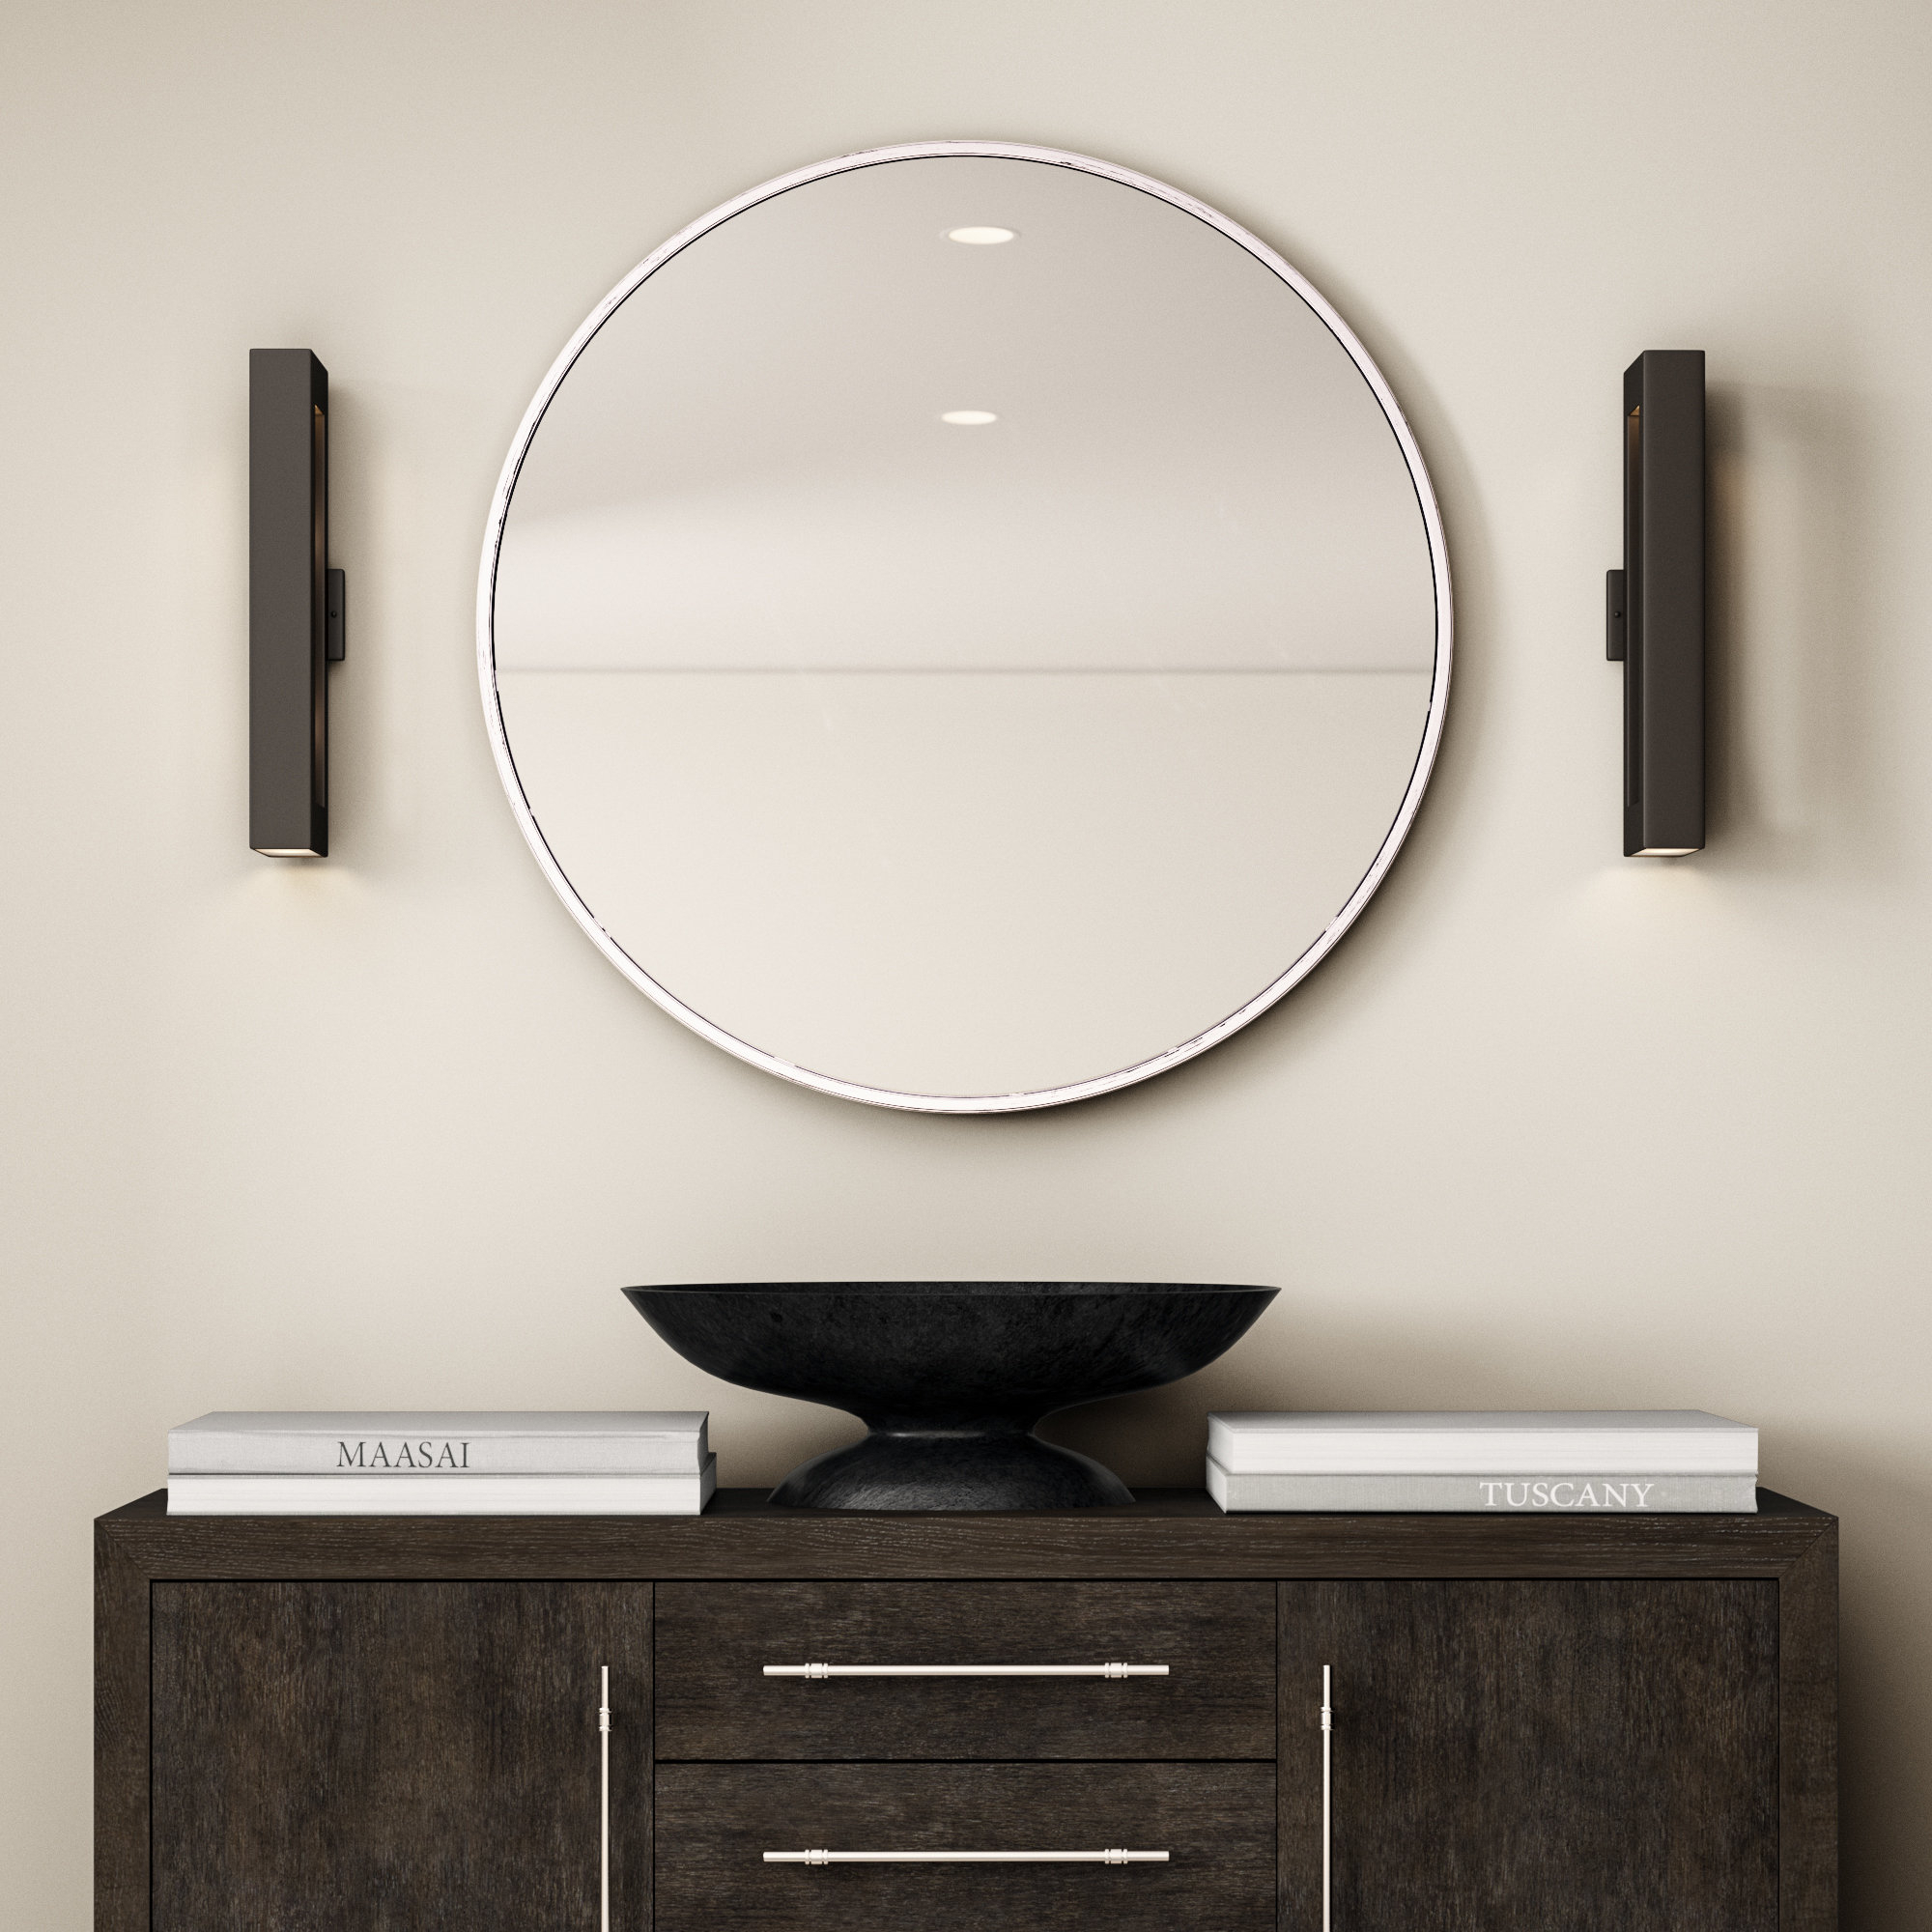 Needville Modern & Contemporary Accent Mirror intended for Hub Modern And Contemporary Accent Mirrors (Image 18 of 30)